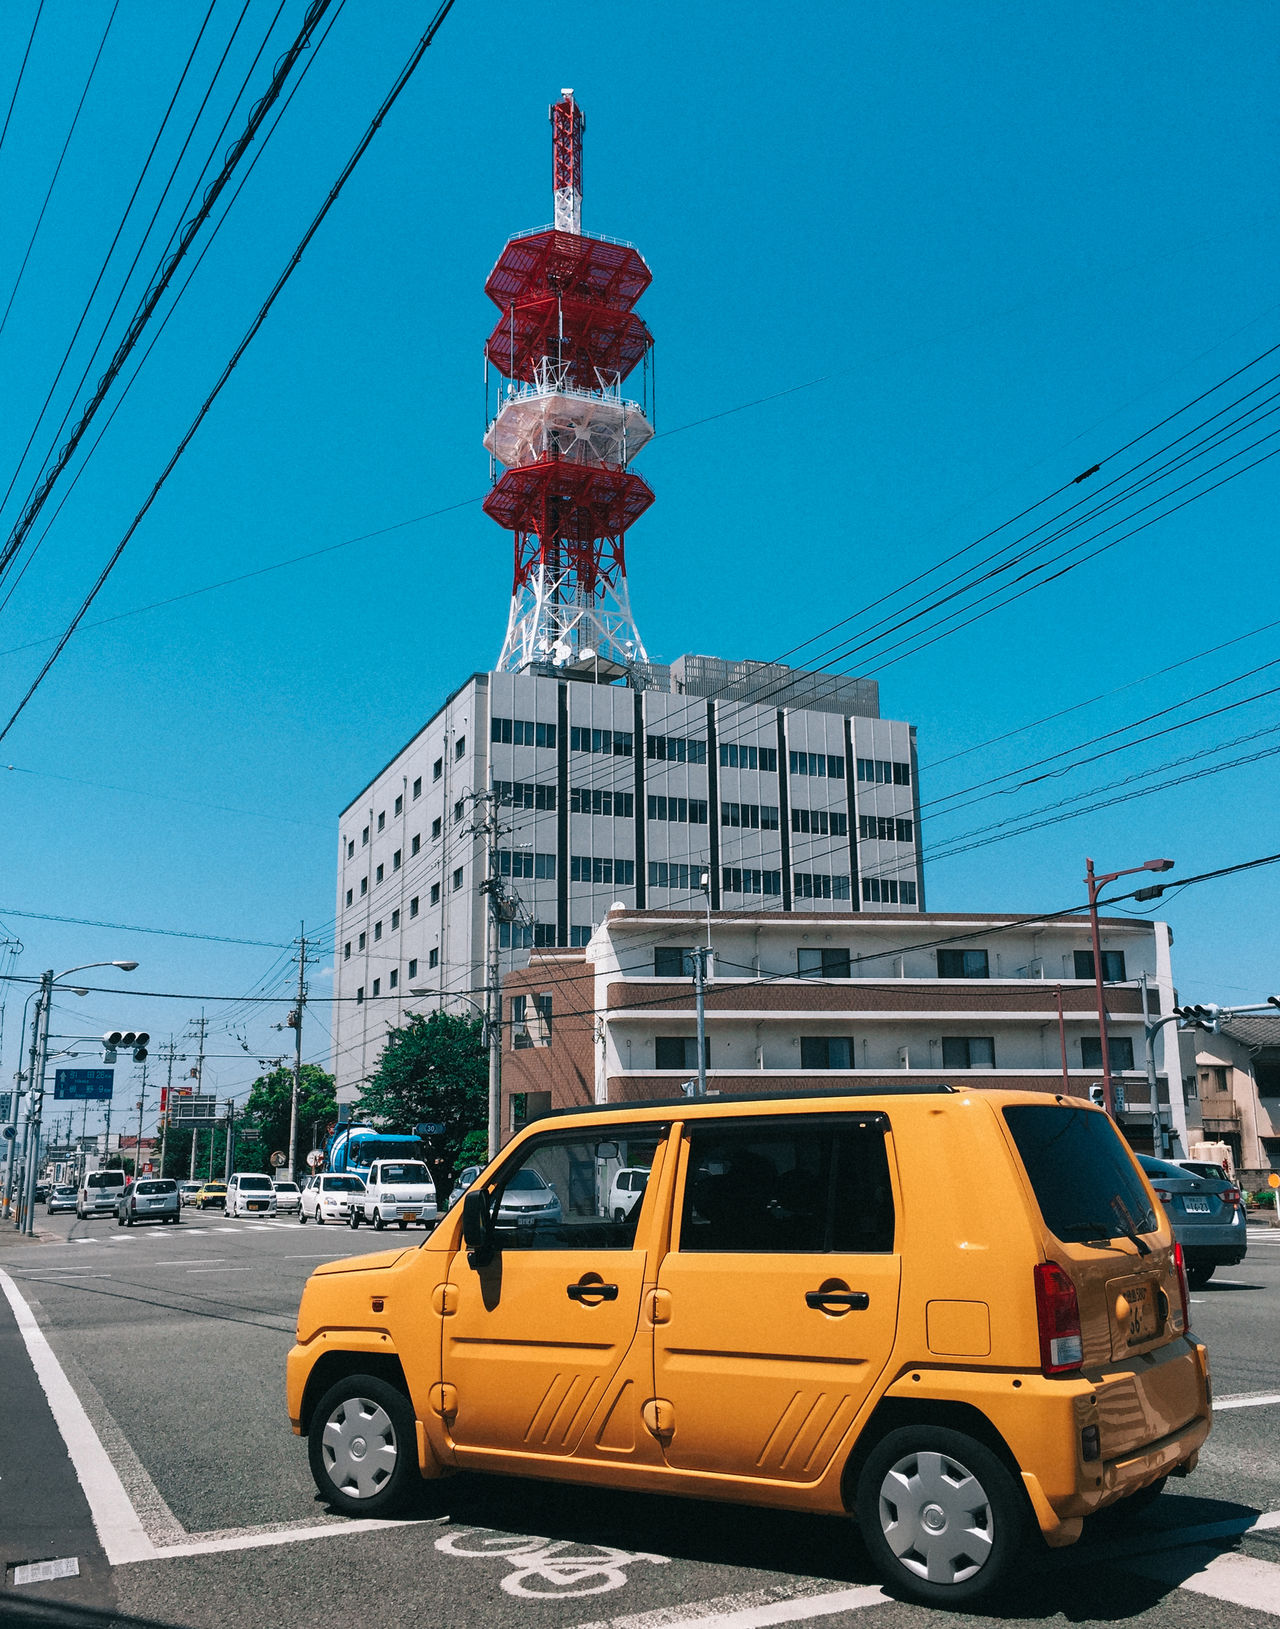 // random yellow love // Architecture Blue Building Exterior Built Structure BYOPaper! Cable Car City Clear Sky Day Electricity Pylon EyeEm Best Shots IPhoneography Japan Land Vehicle Outdoors Sky Skyscraper Street Photography The Street Photographer - 2017 EyeEm Awards Transportation Ultimate Japan Yellow Yellow Color Yellow Taxi